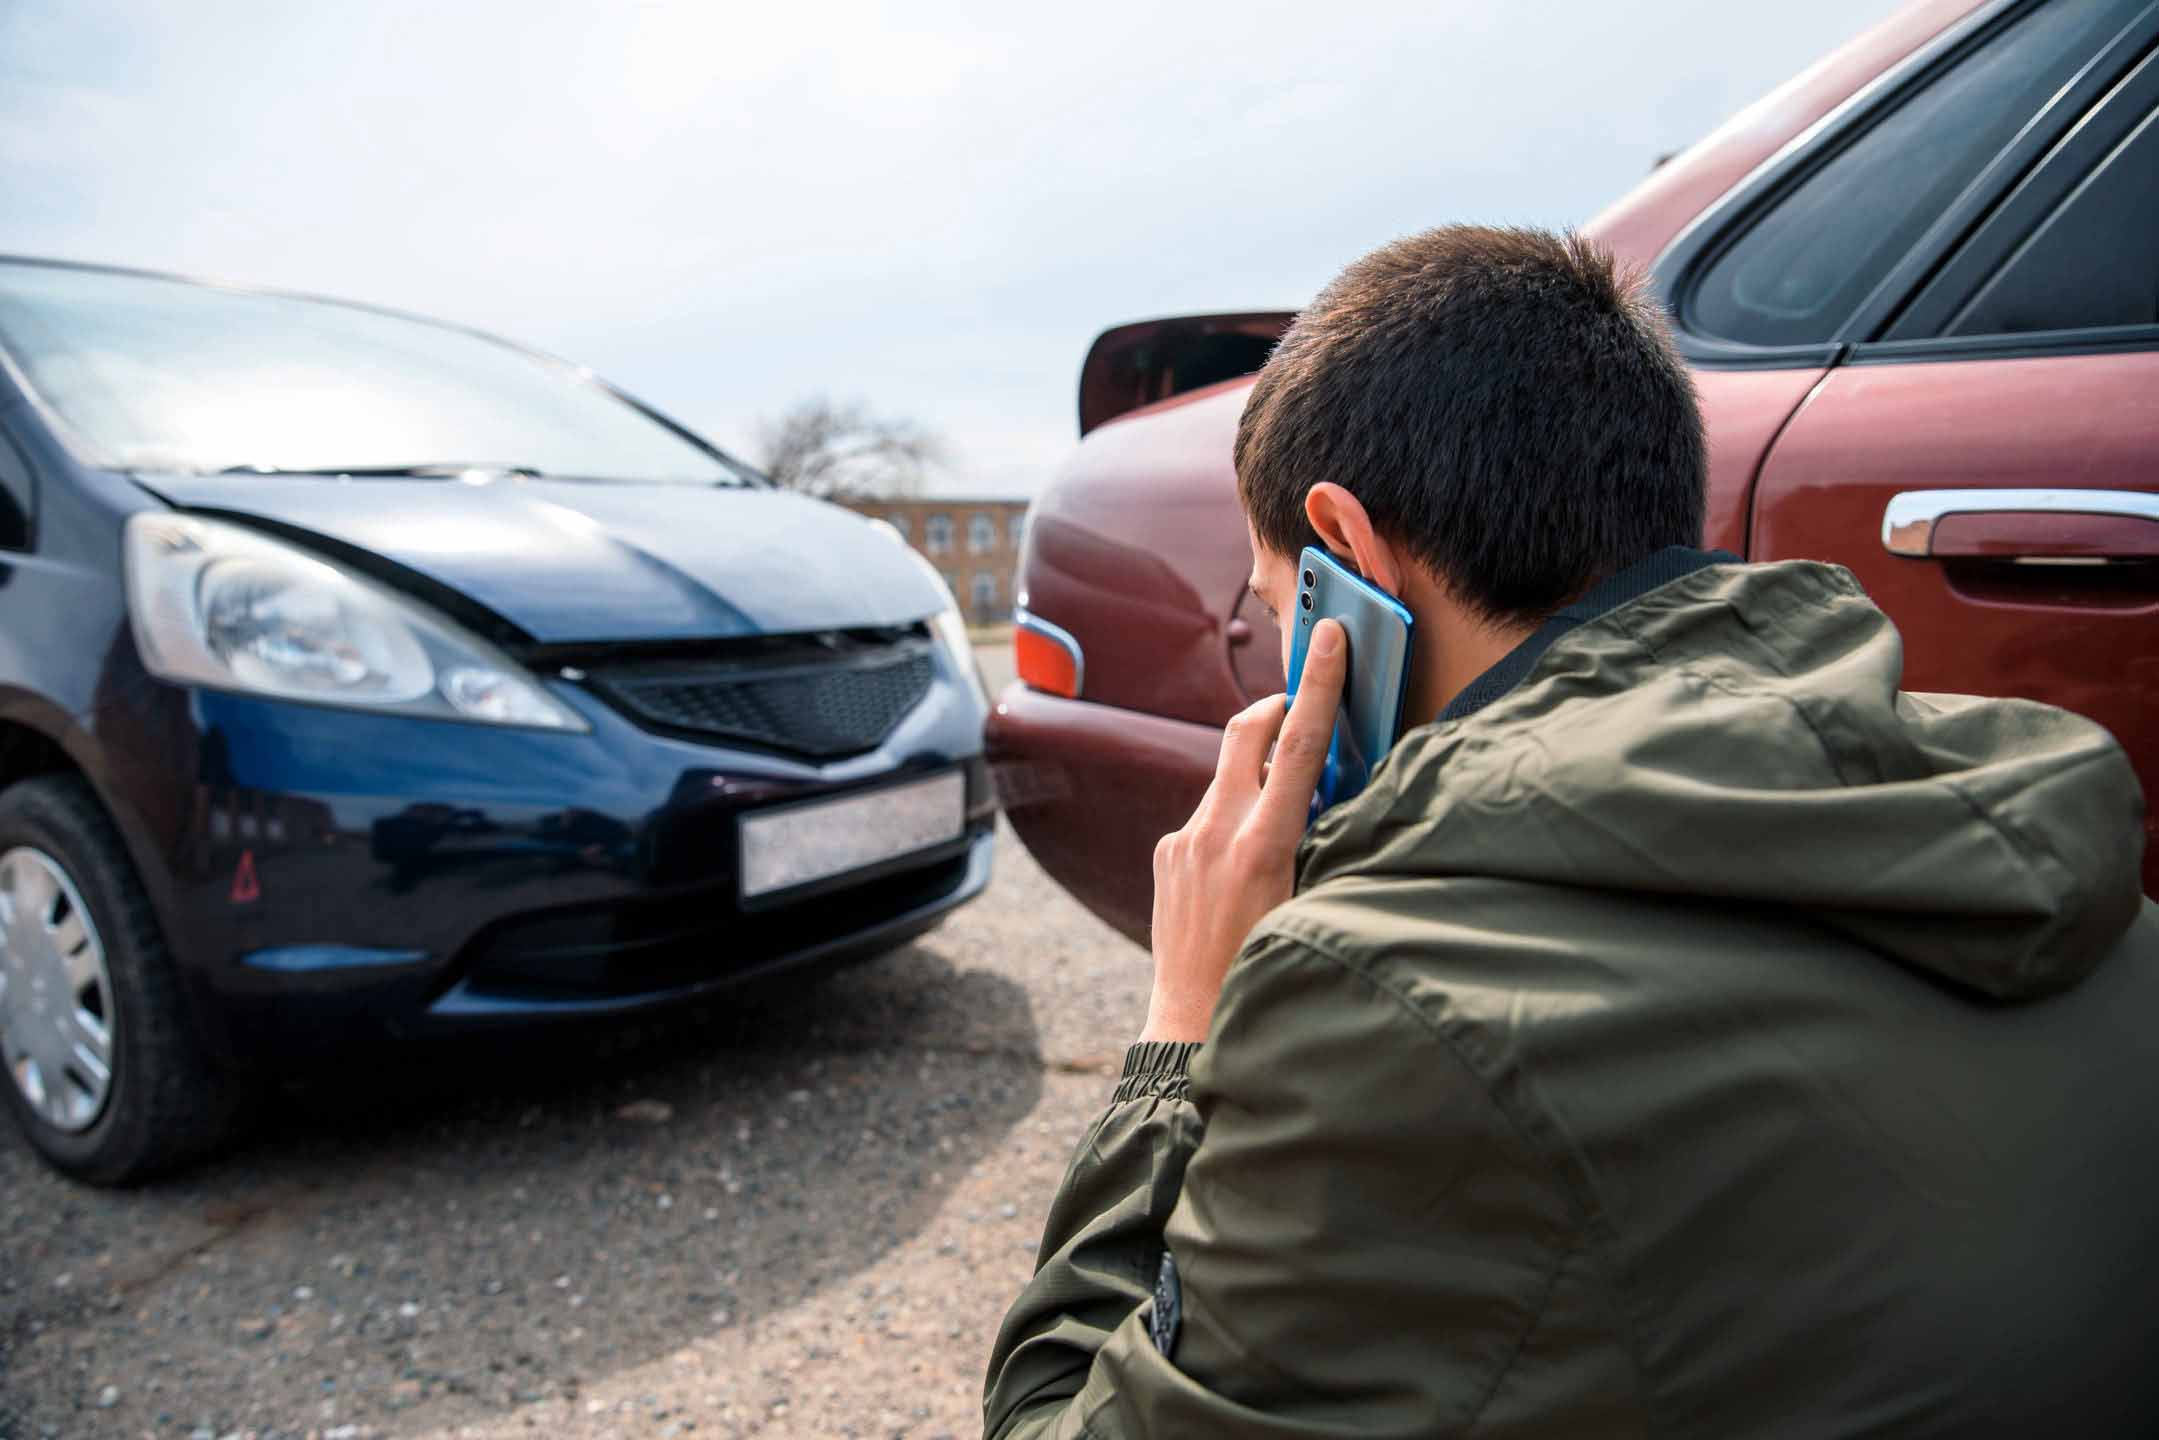 Personal Injury Accident Law Firm Pico Rivera, CA